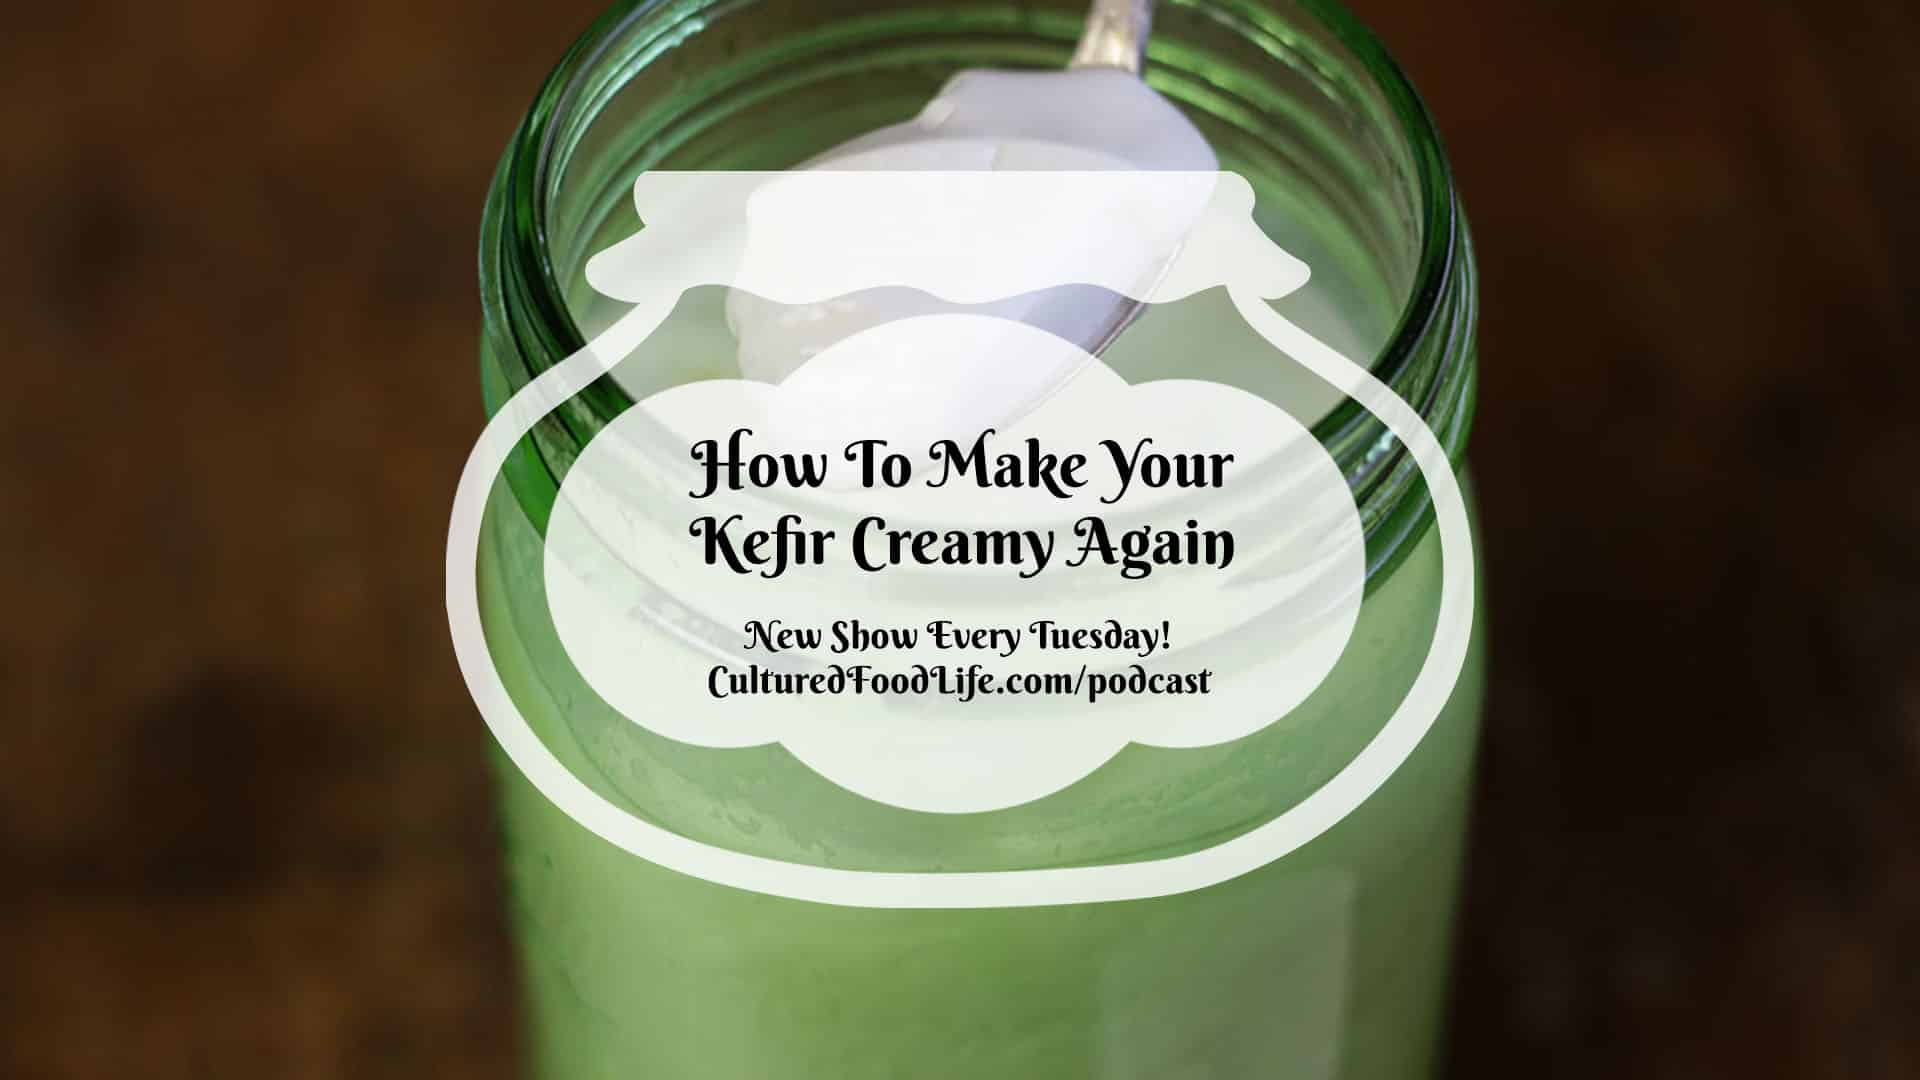 How To Make Your Kefir Creamy Again